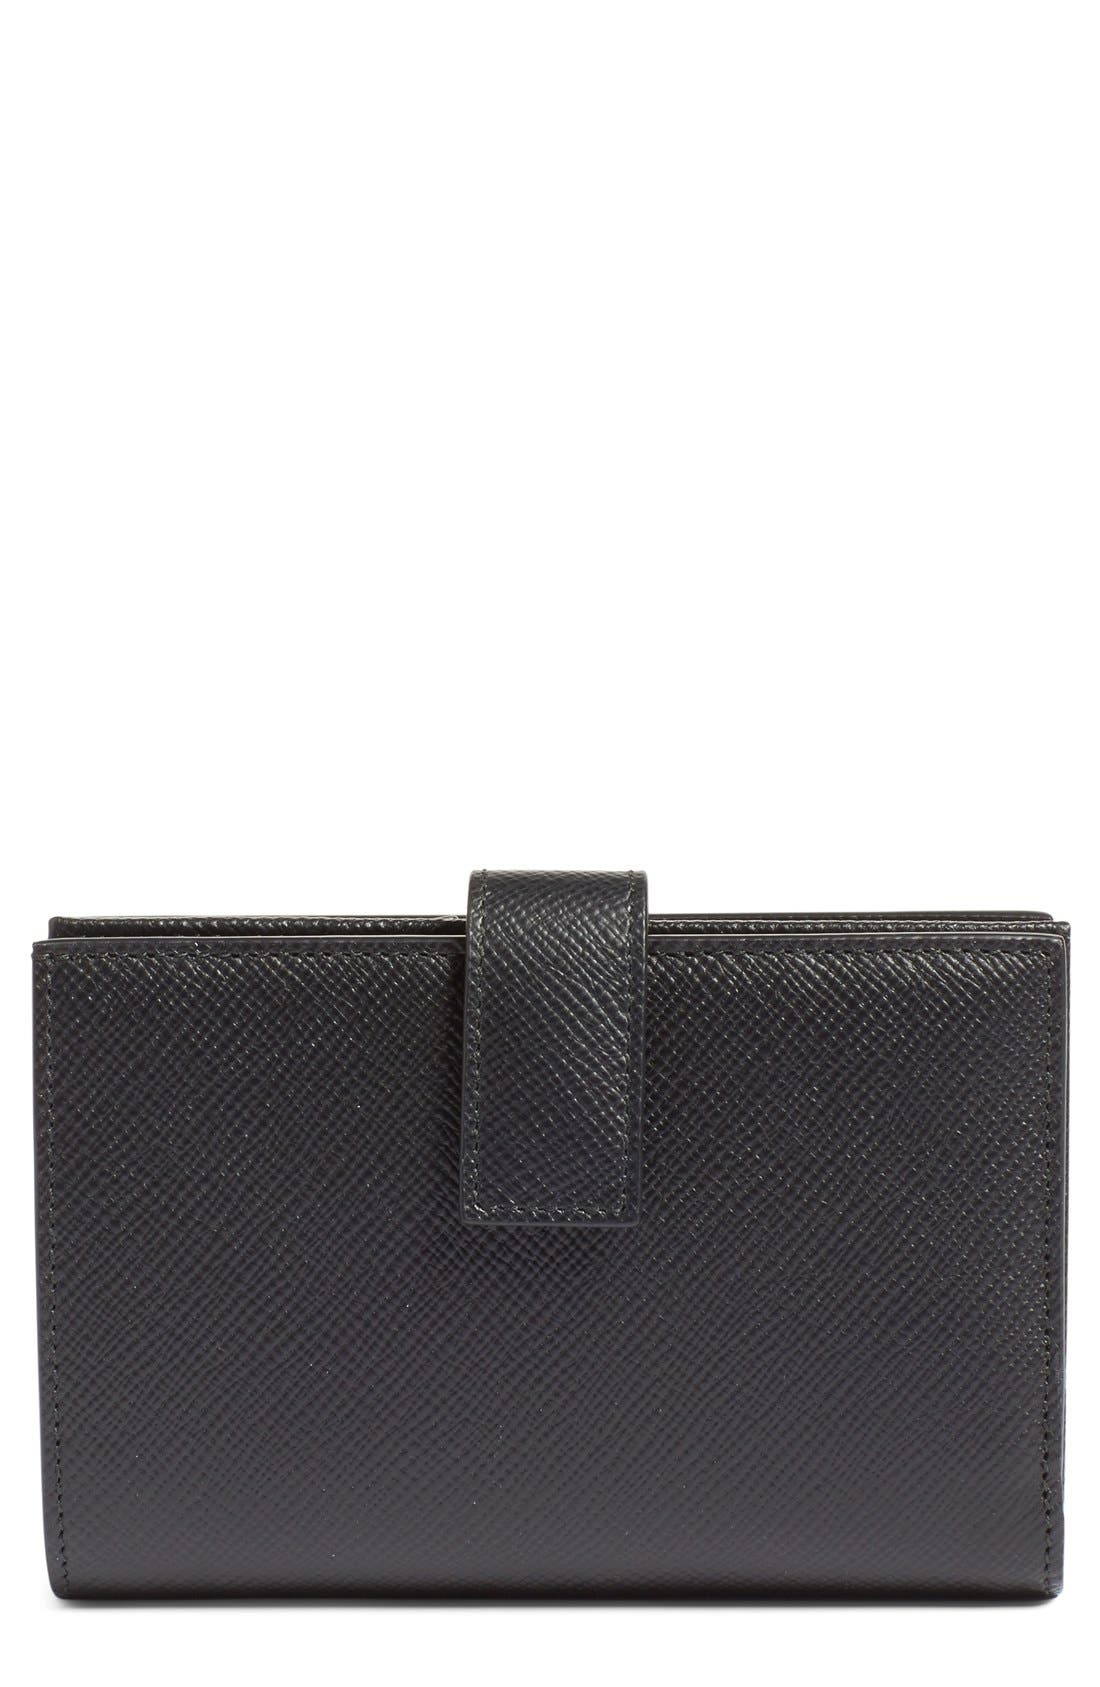 Smythson 'Medium' Continental Wallet